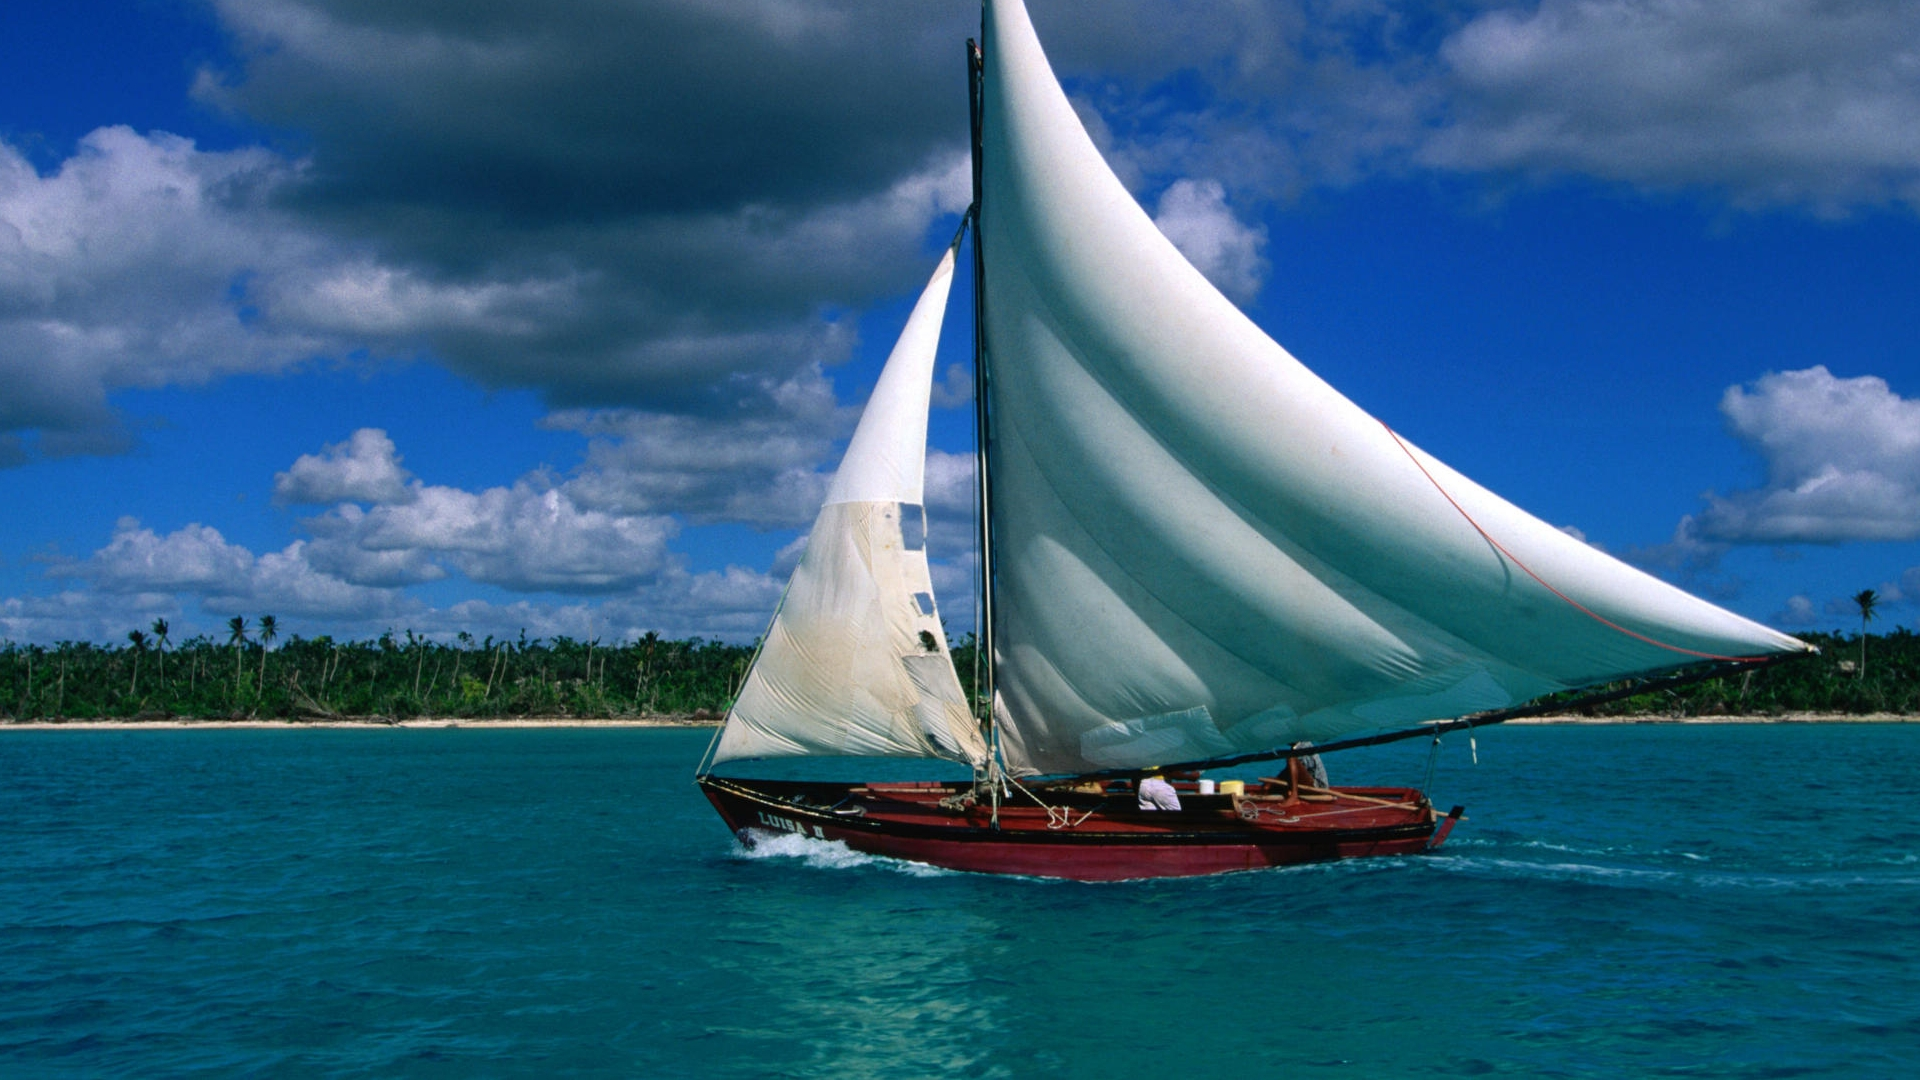 1920x1080 Sailing ship desktop PC and Mac wallpaper 1920x1080